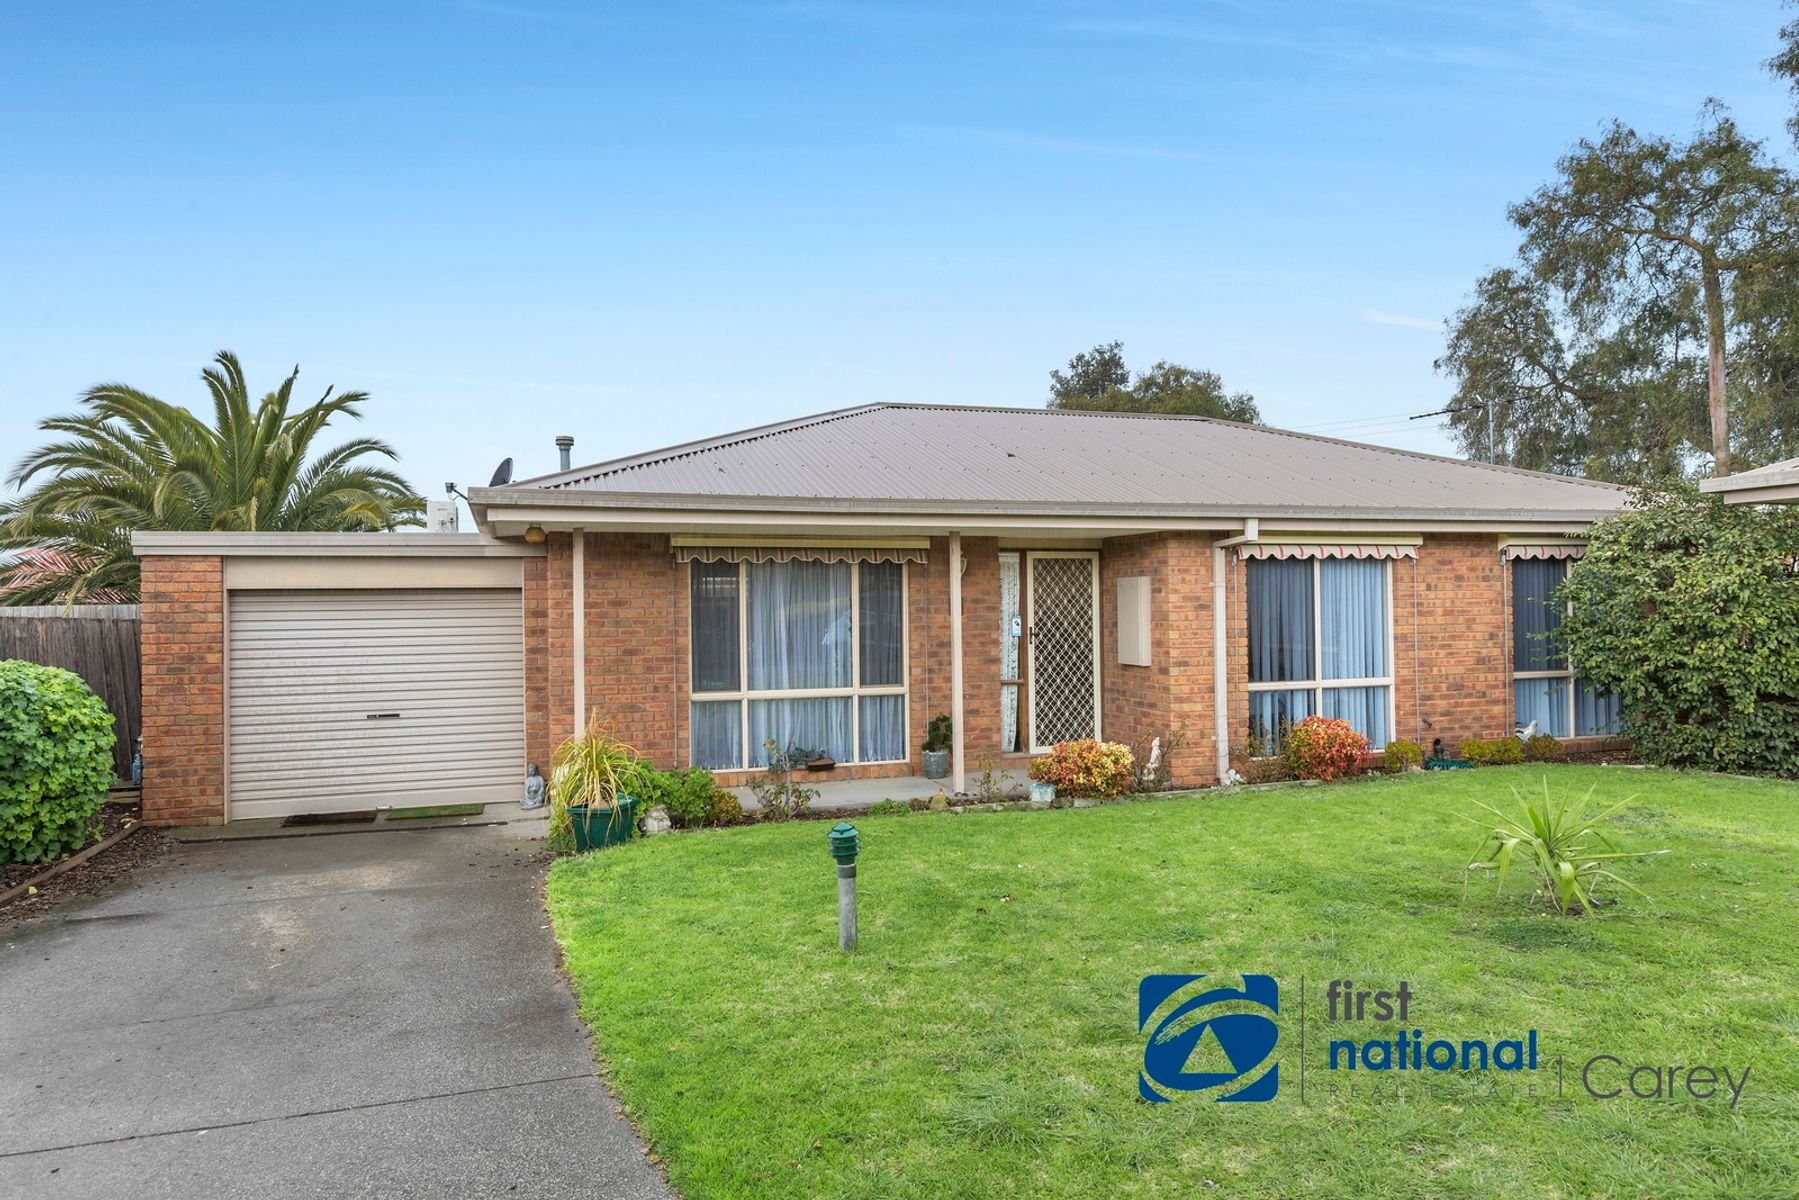 6/10 Forest Road North, Lara, VIC 3212